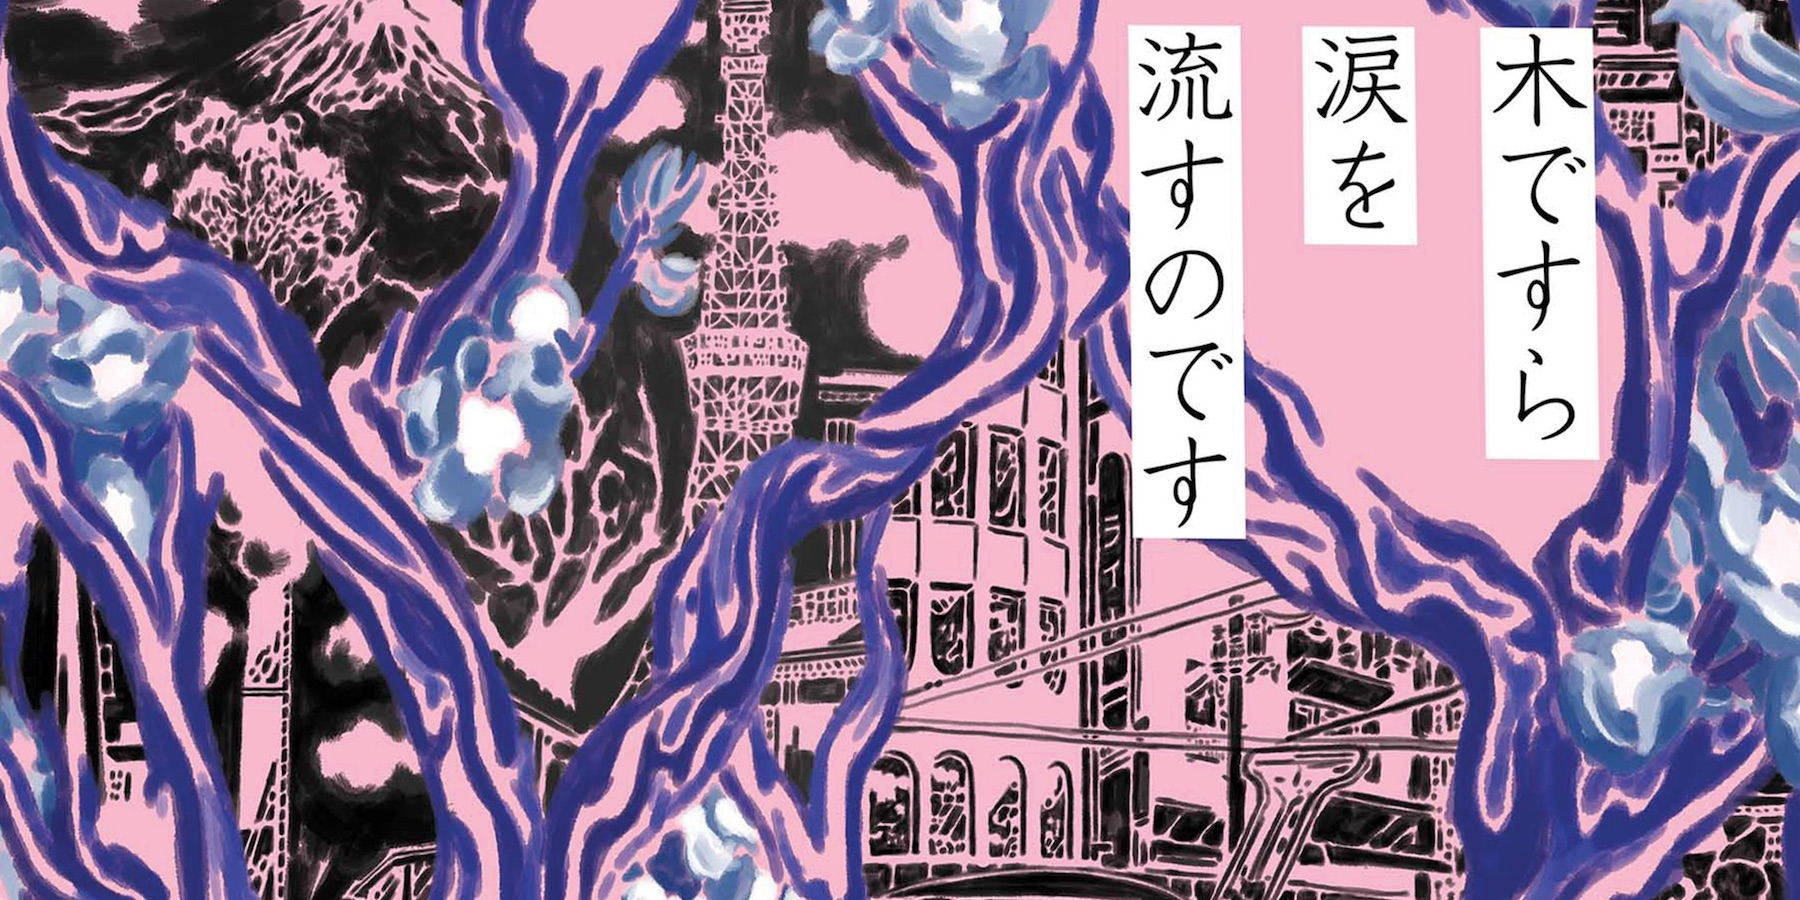 10 Essential Japanese Folk And Rock Records Of The Early 70s